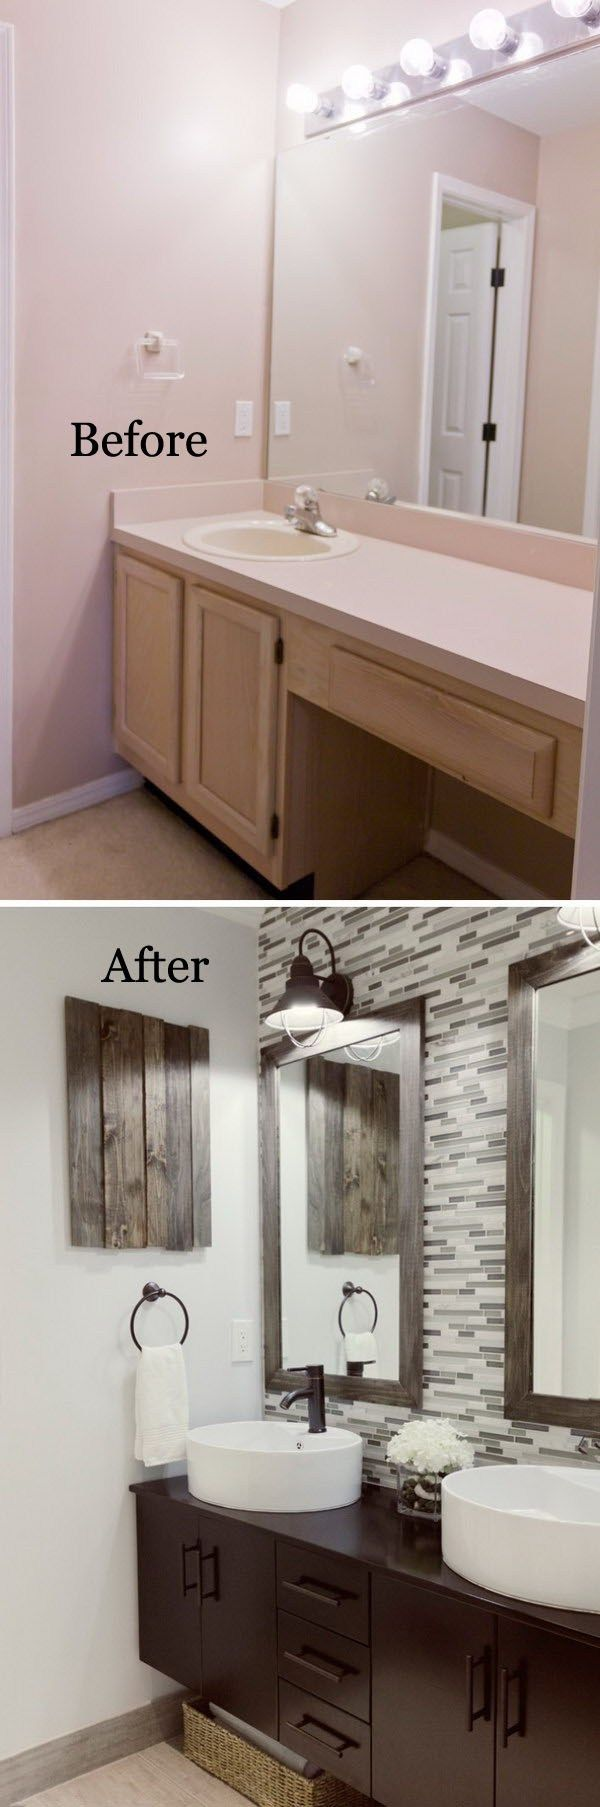 37 Small Bathroom Makeovers Before And After Pics Small